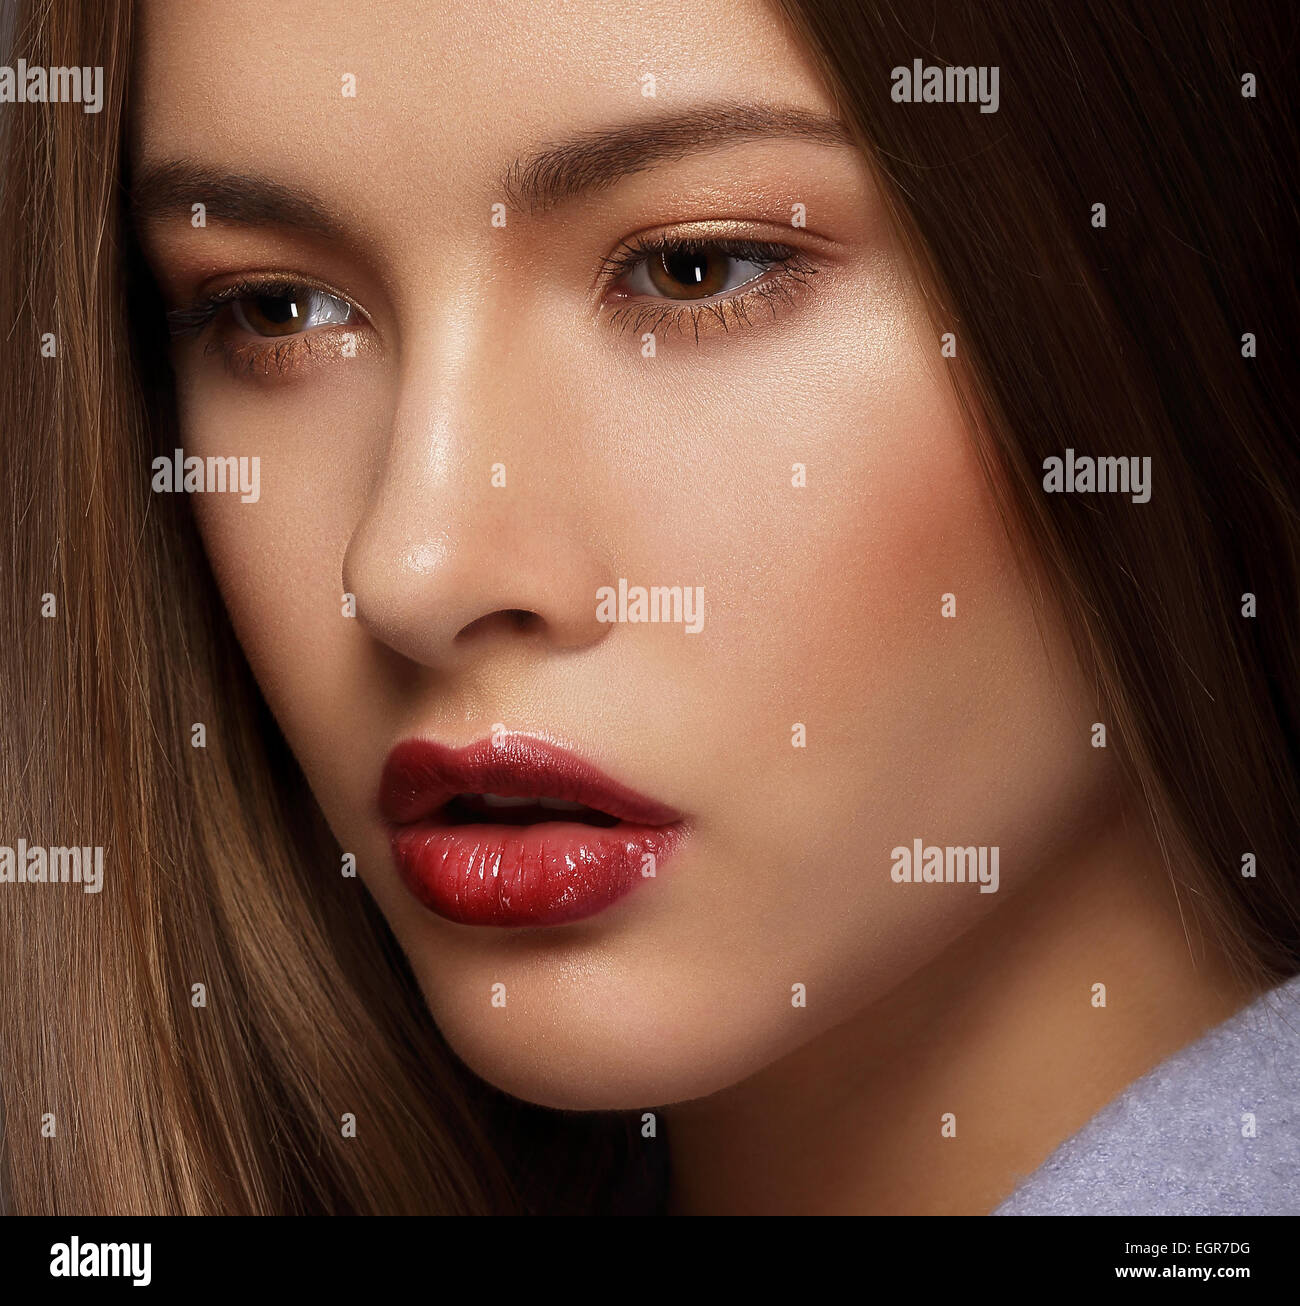 Close Up Portrait of Cute Woman with Perfect Skin - Stock Image